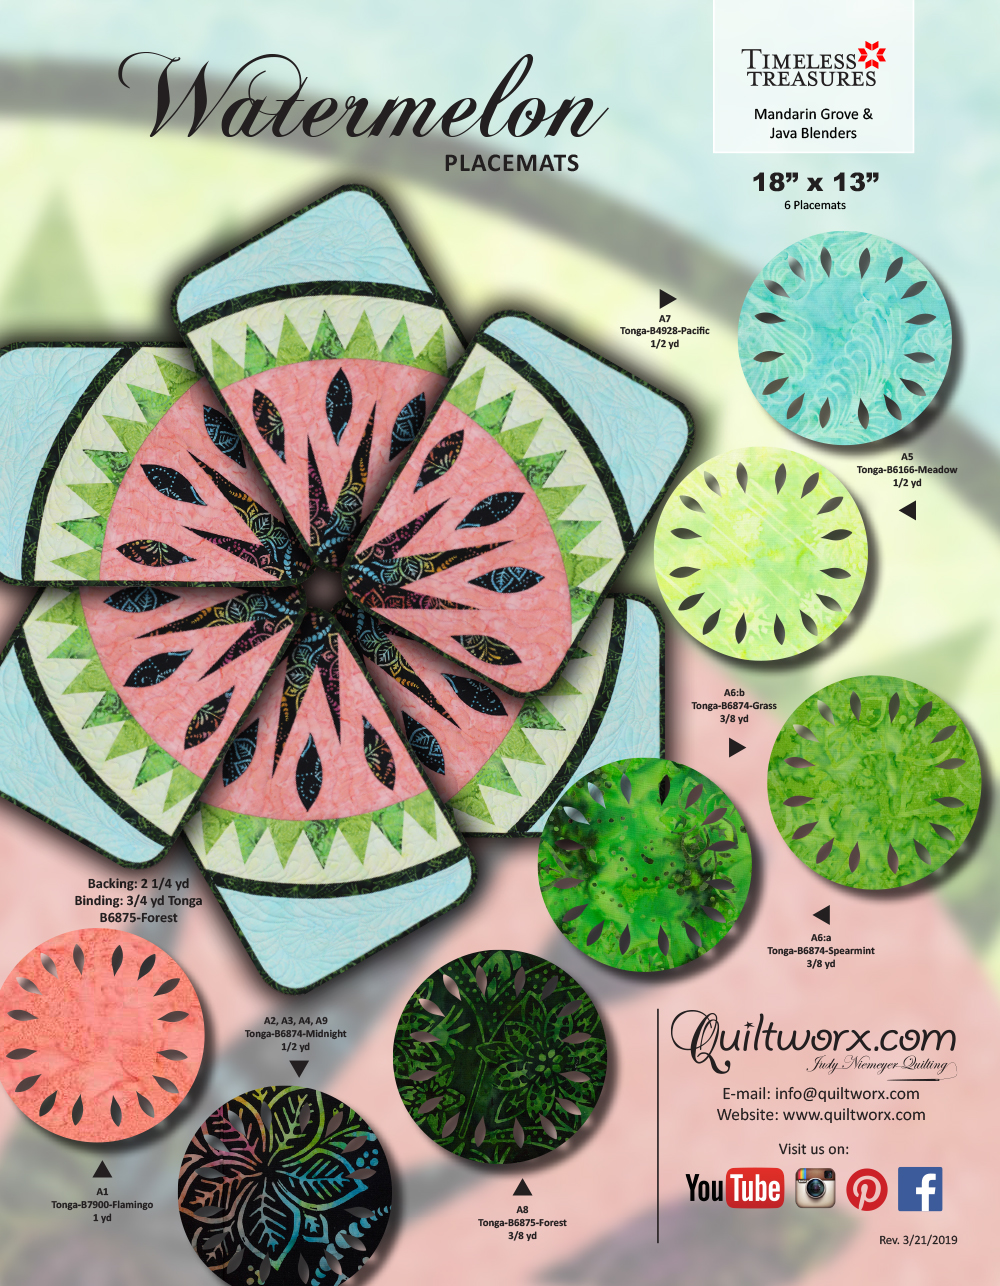 Watermelon-Placemats-MG-1Pg-KS 3-21-19